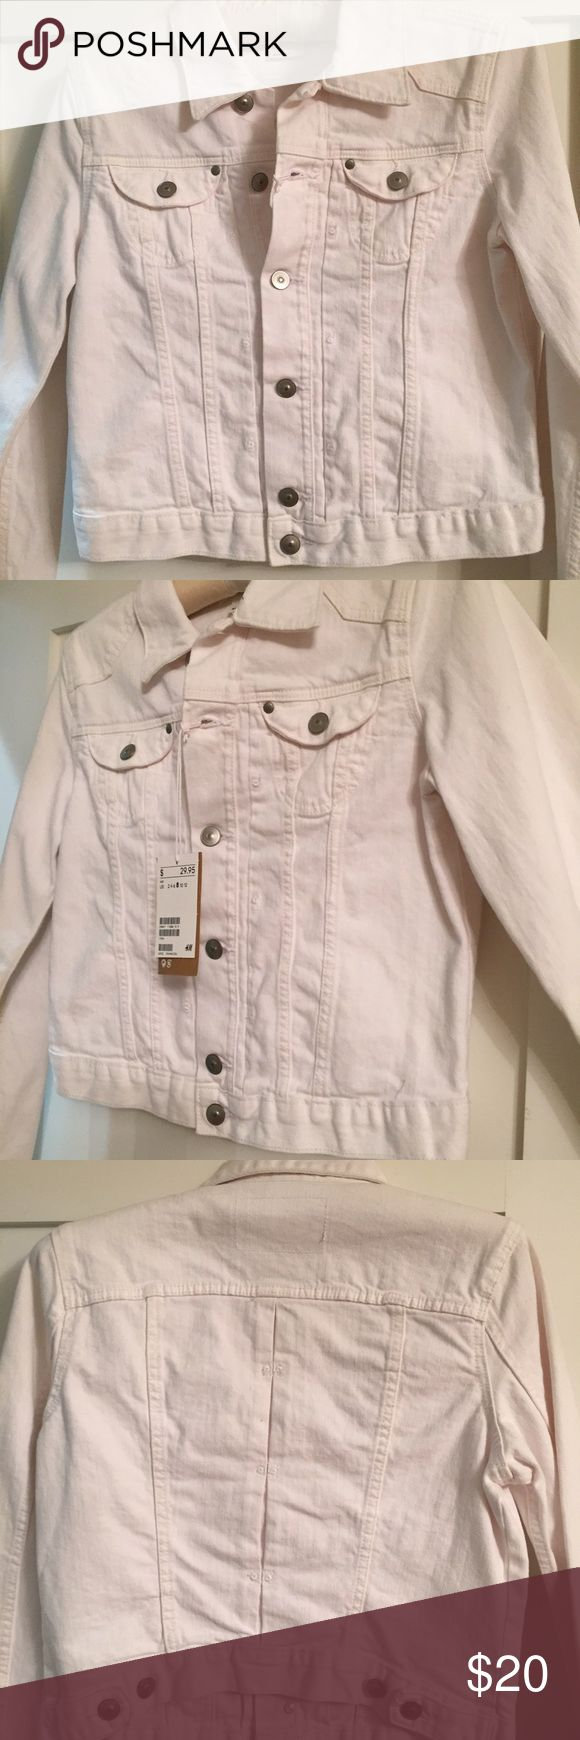 White jean jacket Never worn. Tags still on. White jeans jacket H&M Jackets & Coats Jean Jackets